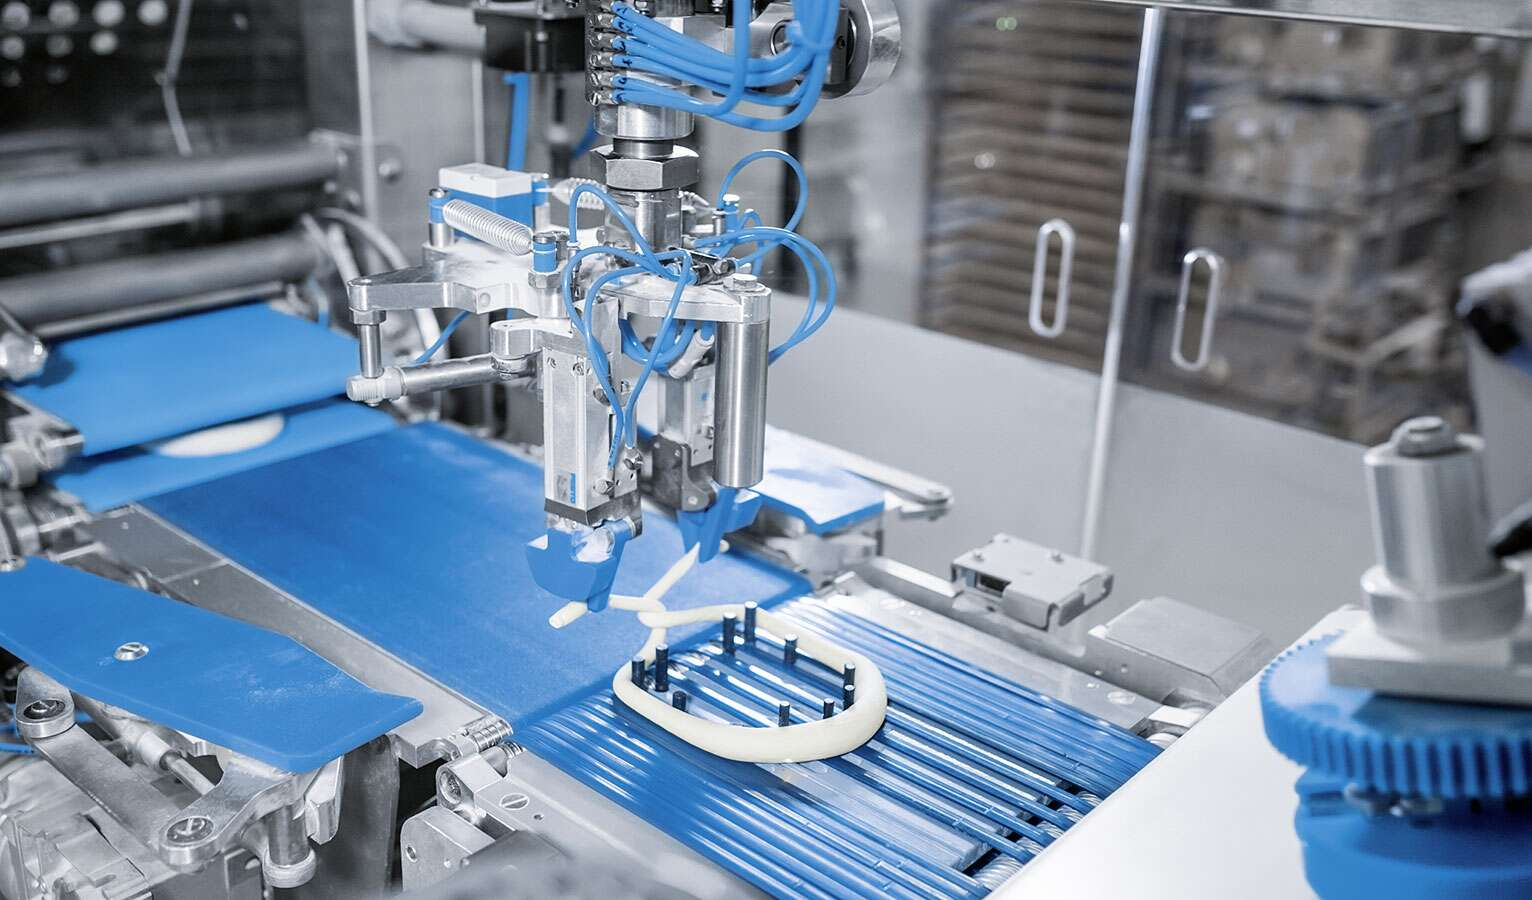 From compressed air preparation to actuator and gripping technology: this pretzel-twisting machine contains a great deal of Festo know-how.